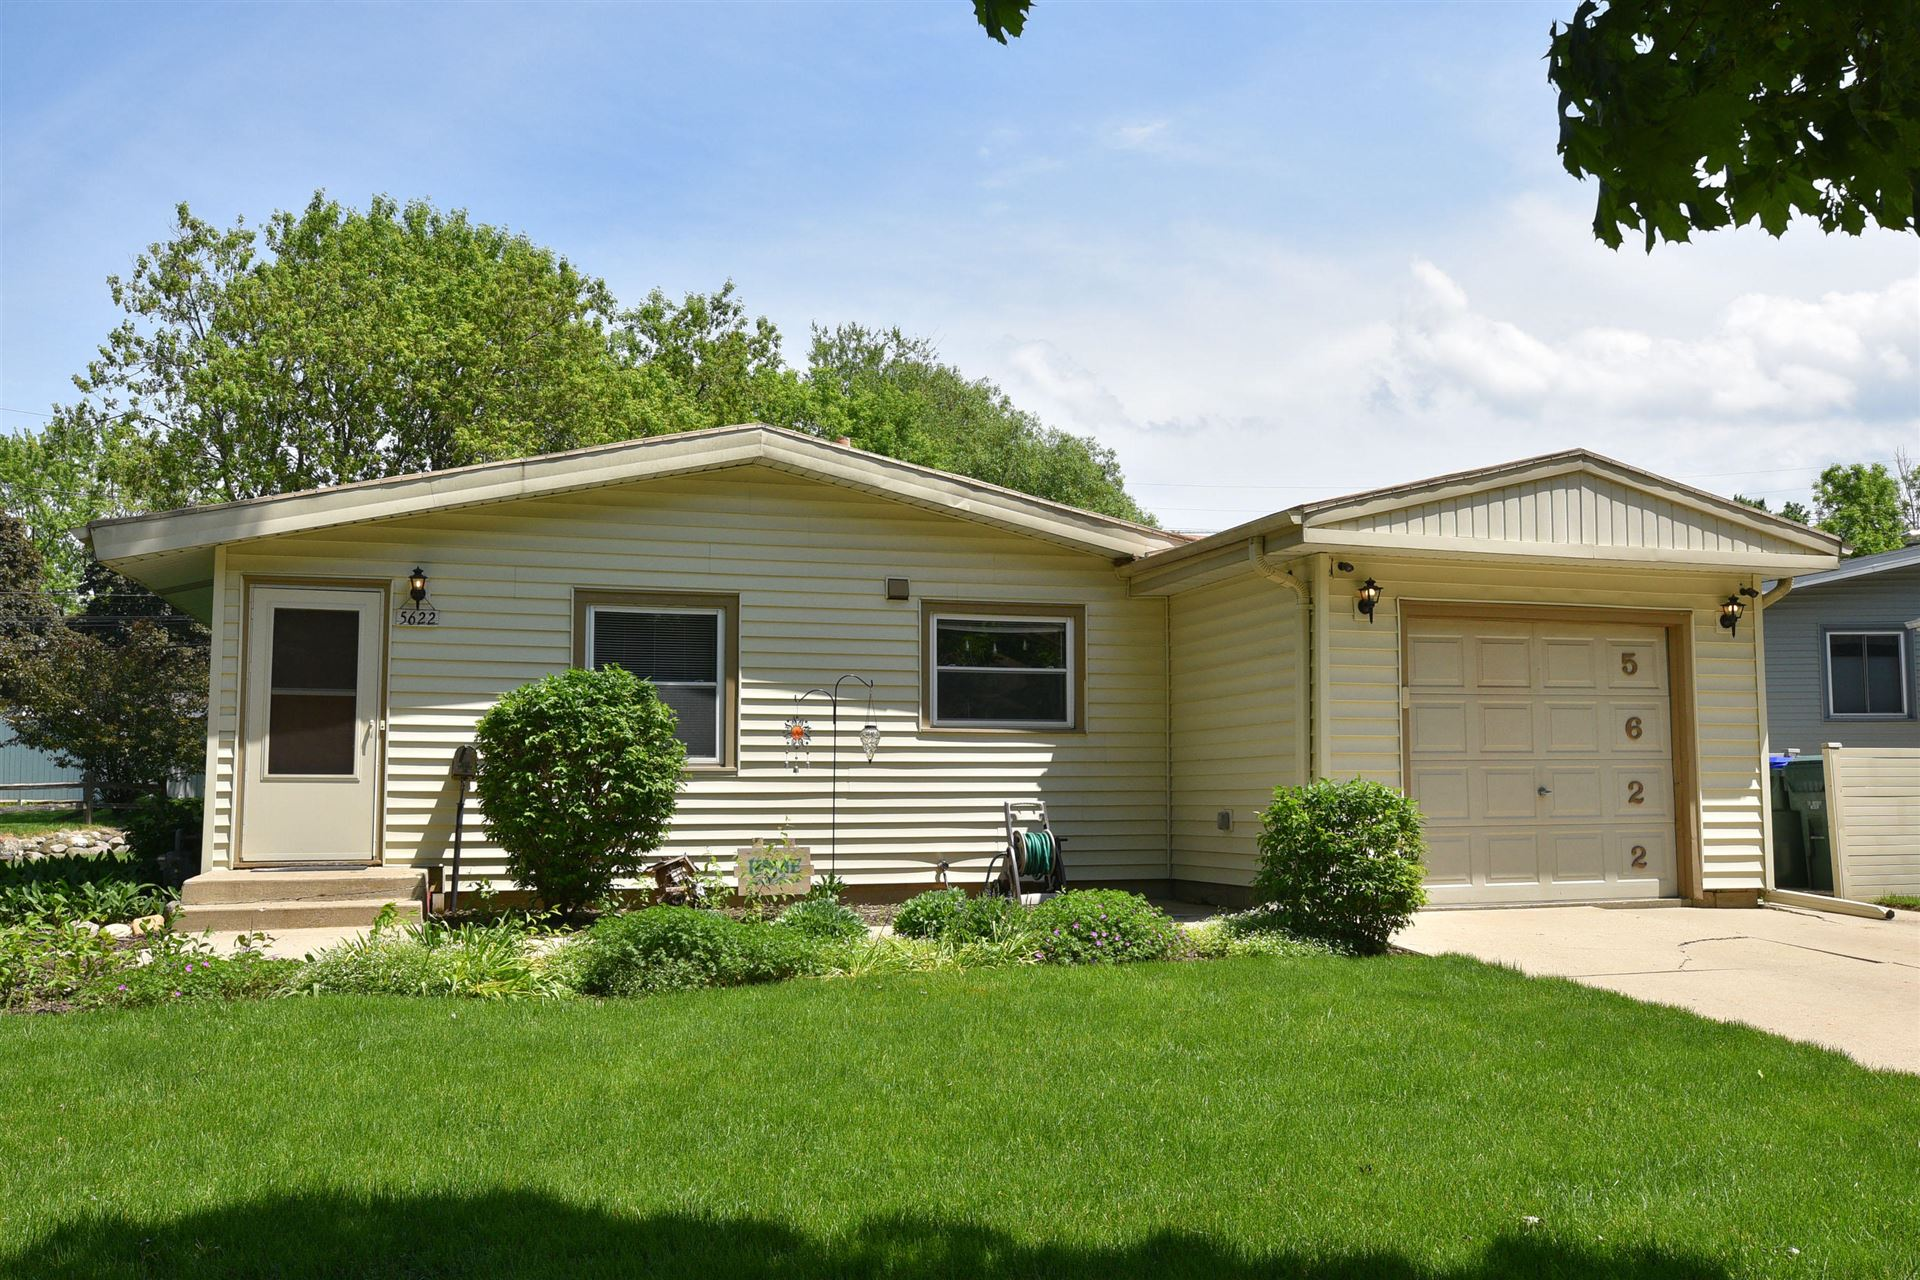 5622 Exeter St, Greendale, WI 53129 - #: 1692359